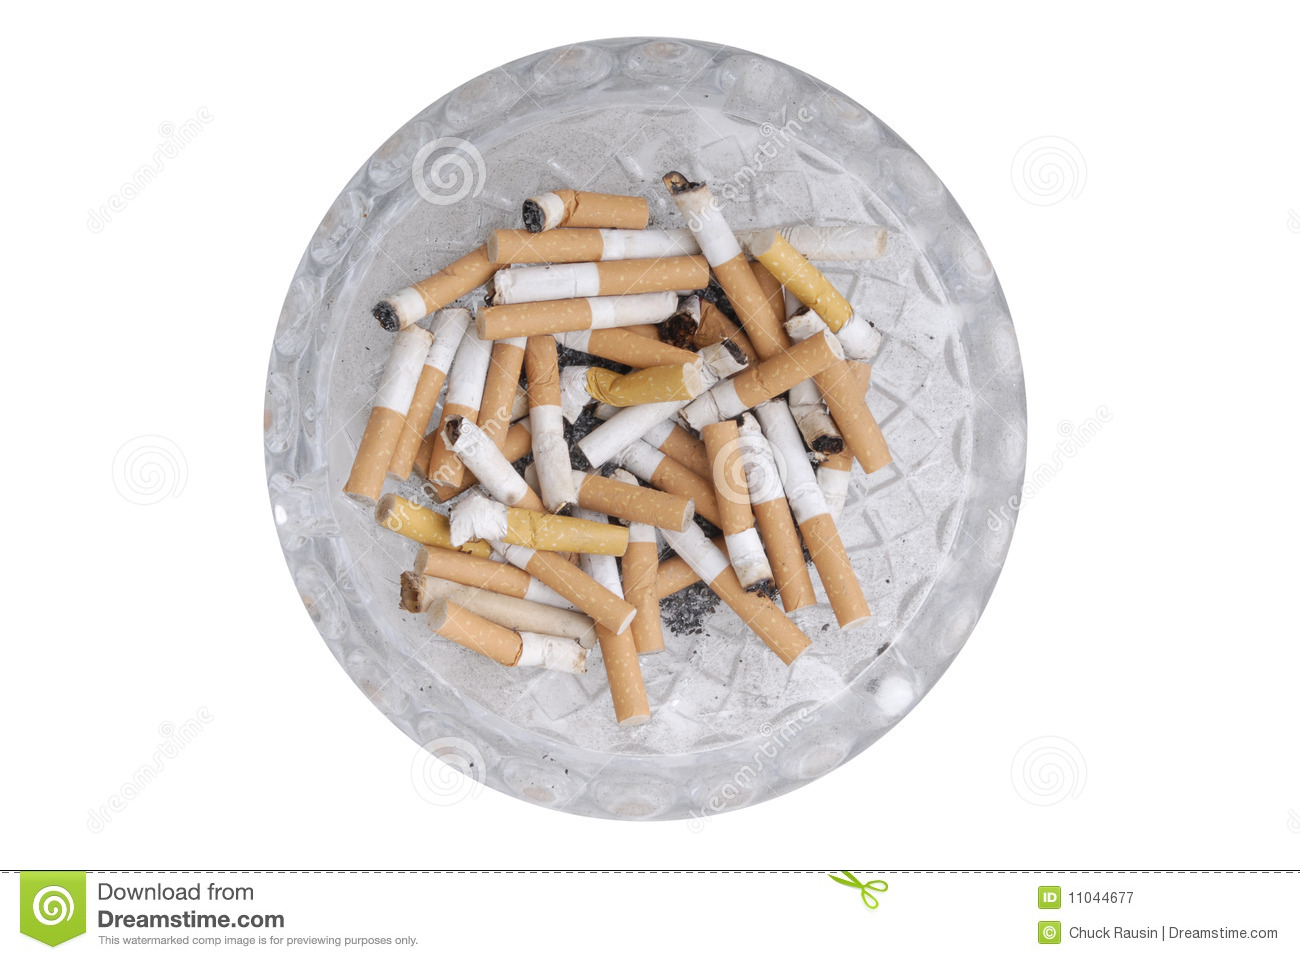 Feasibility of Cigarette Butts and Garlic as Insecticide Essay Sample